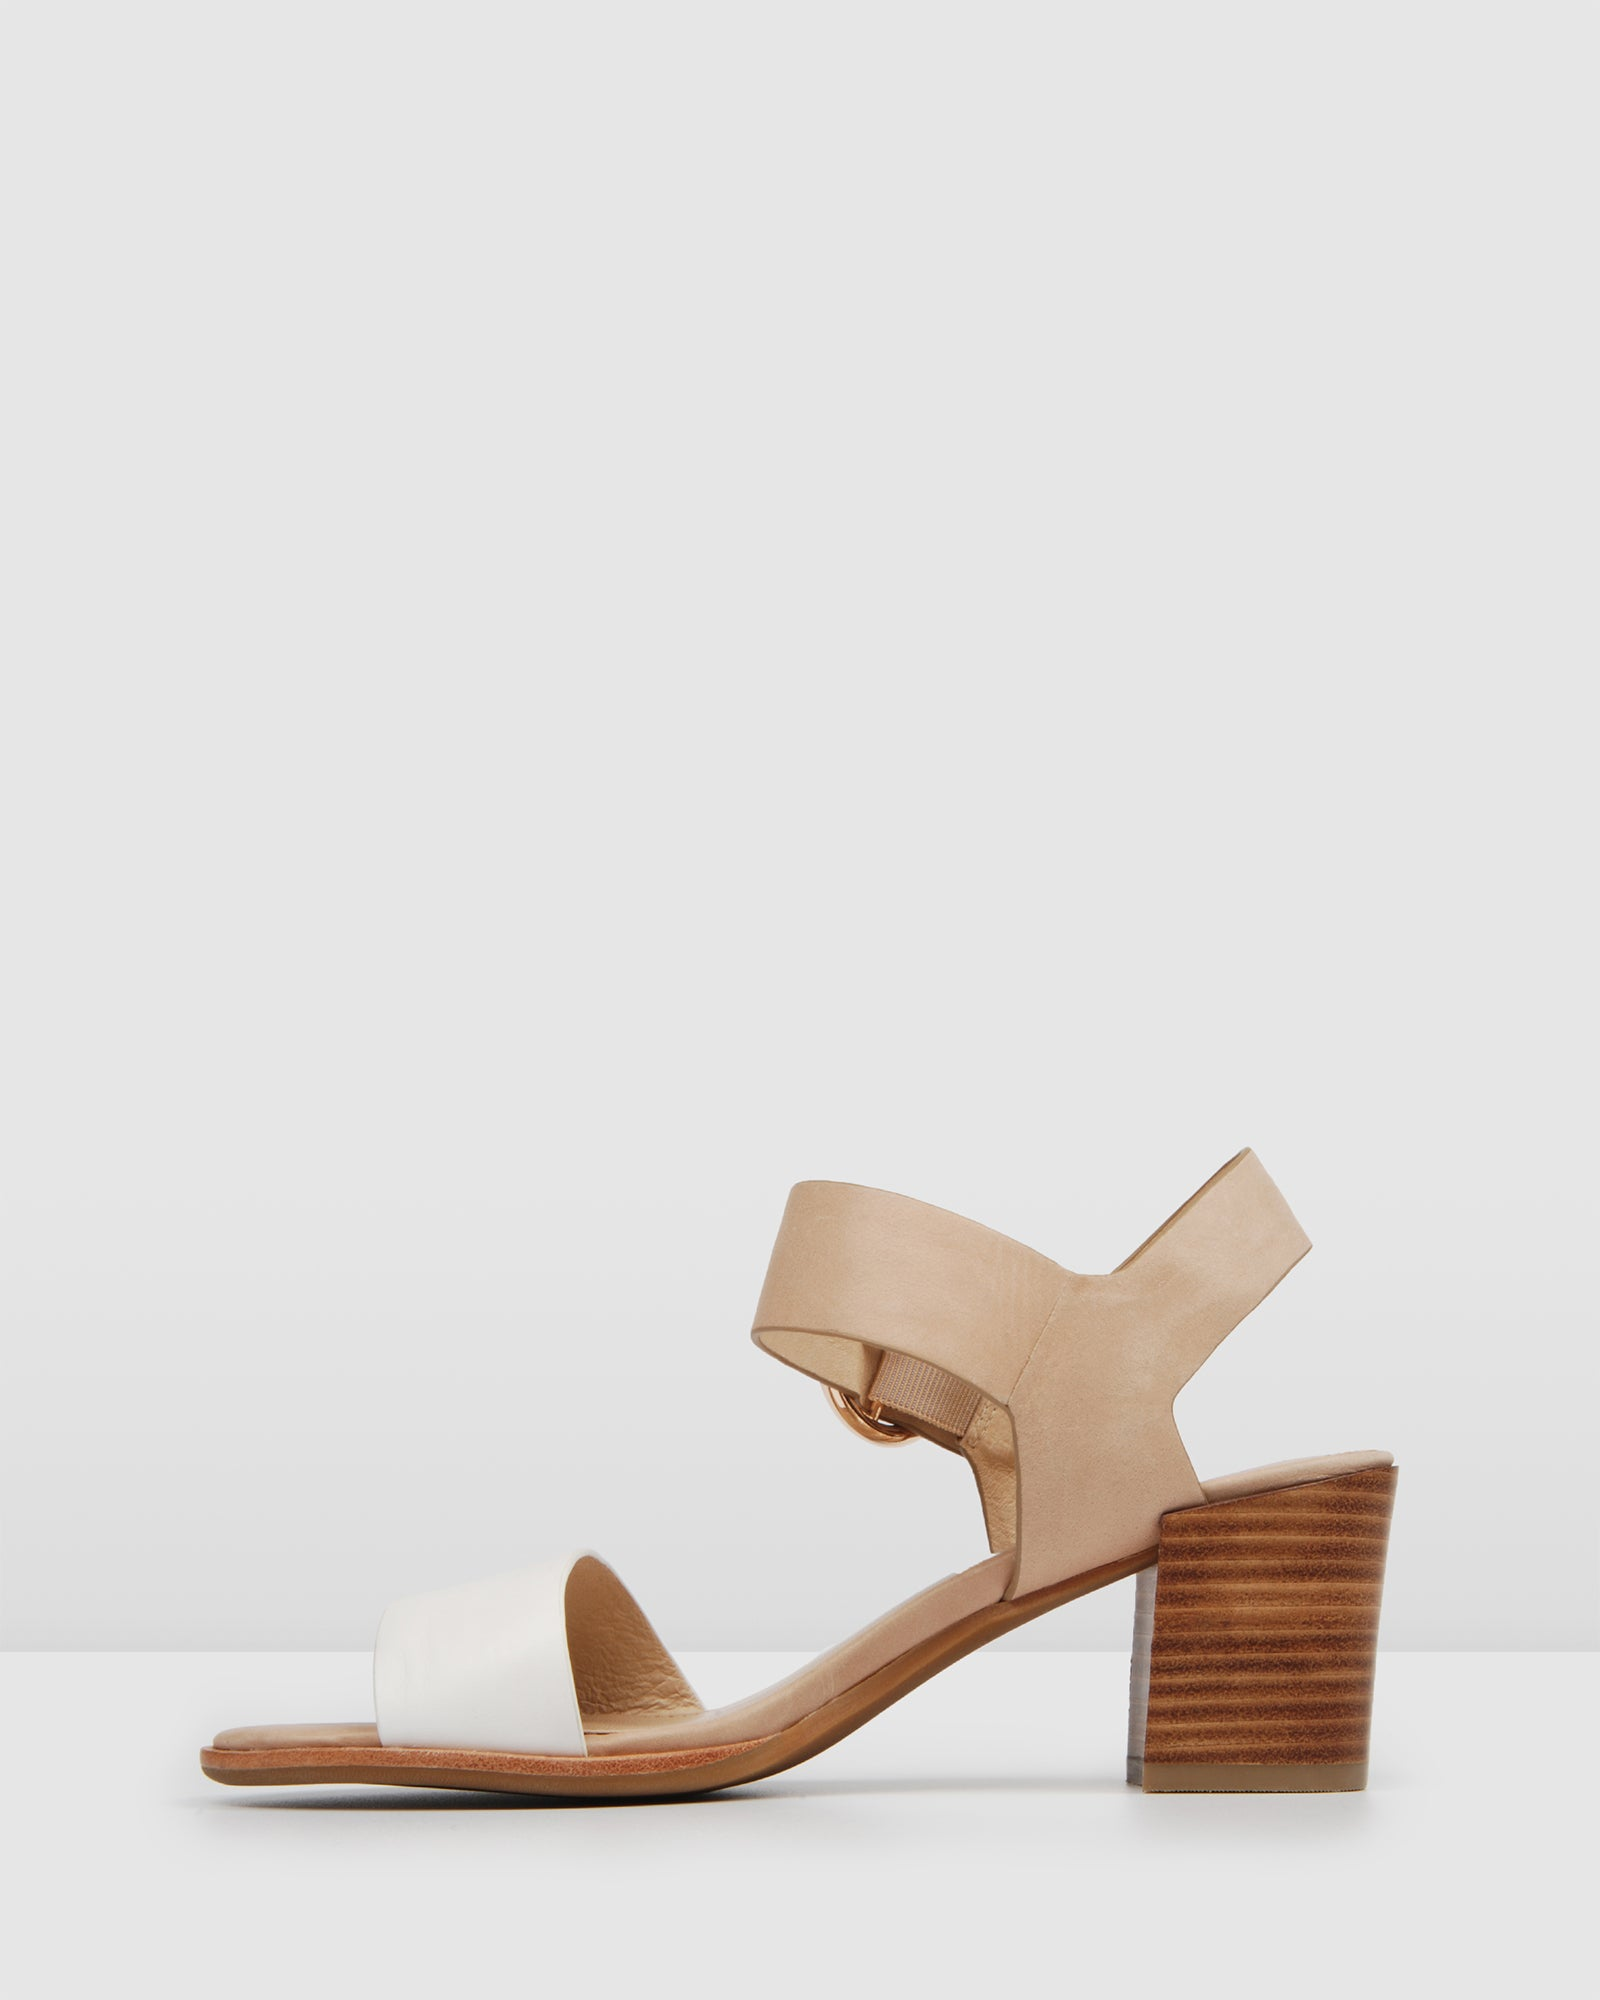 BOWIE MID HEEL SANDALS NATURAL/WHITE